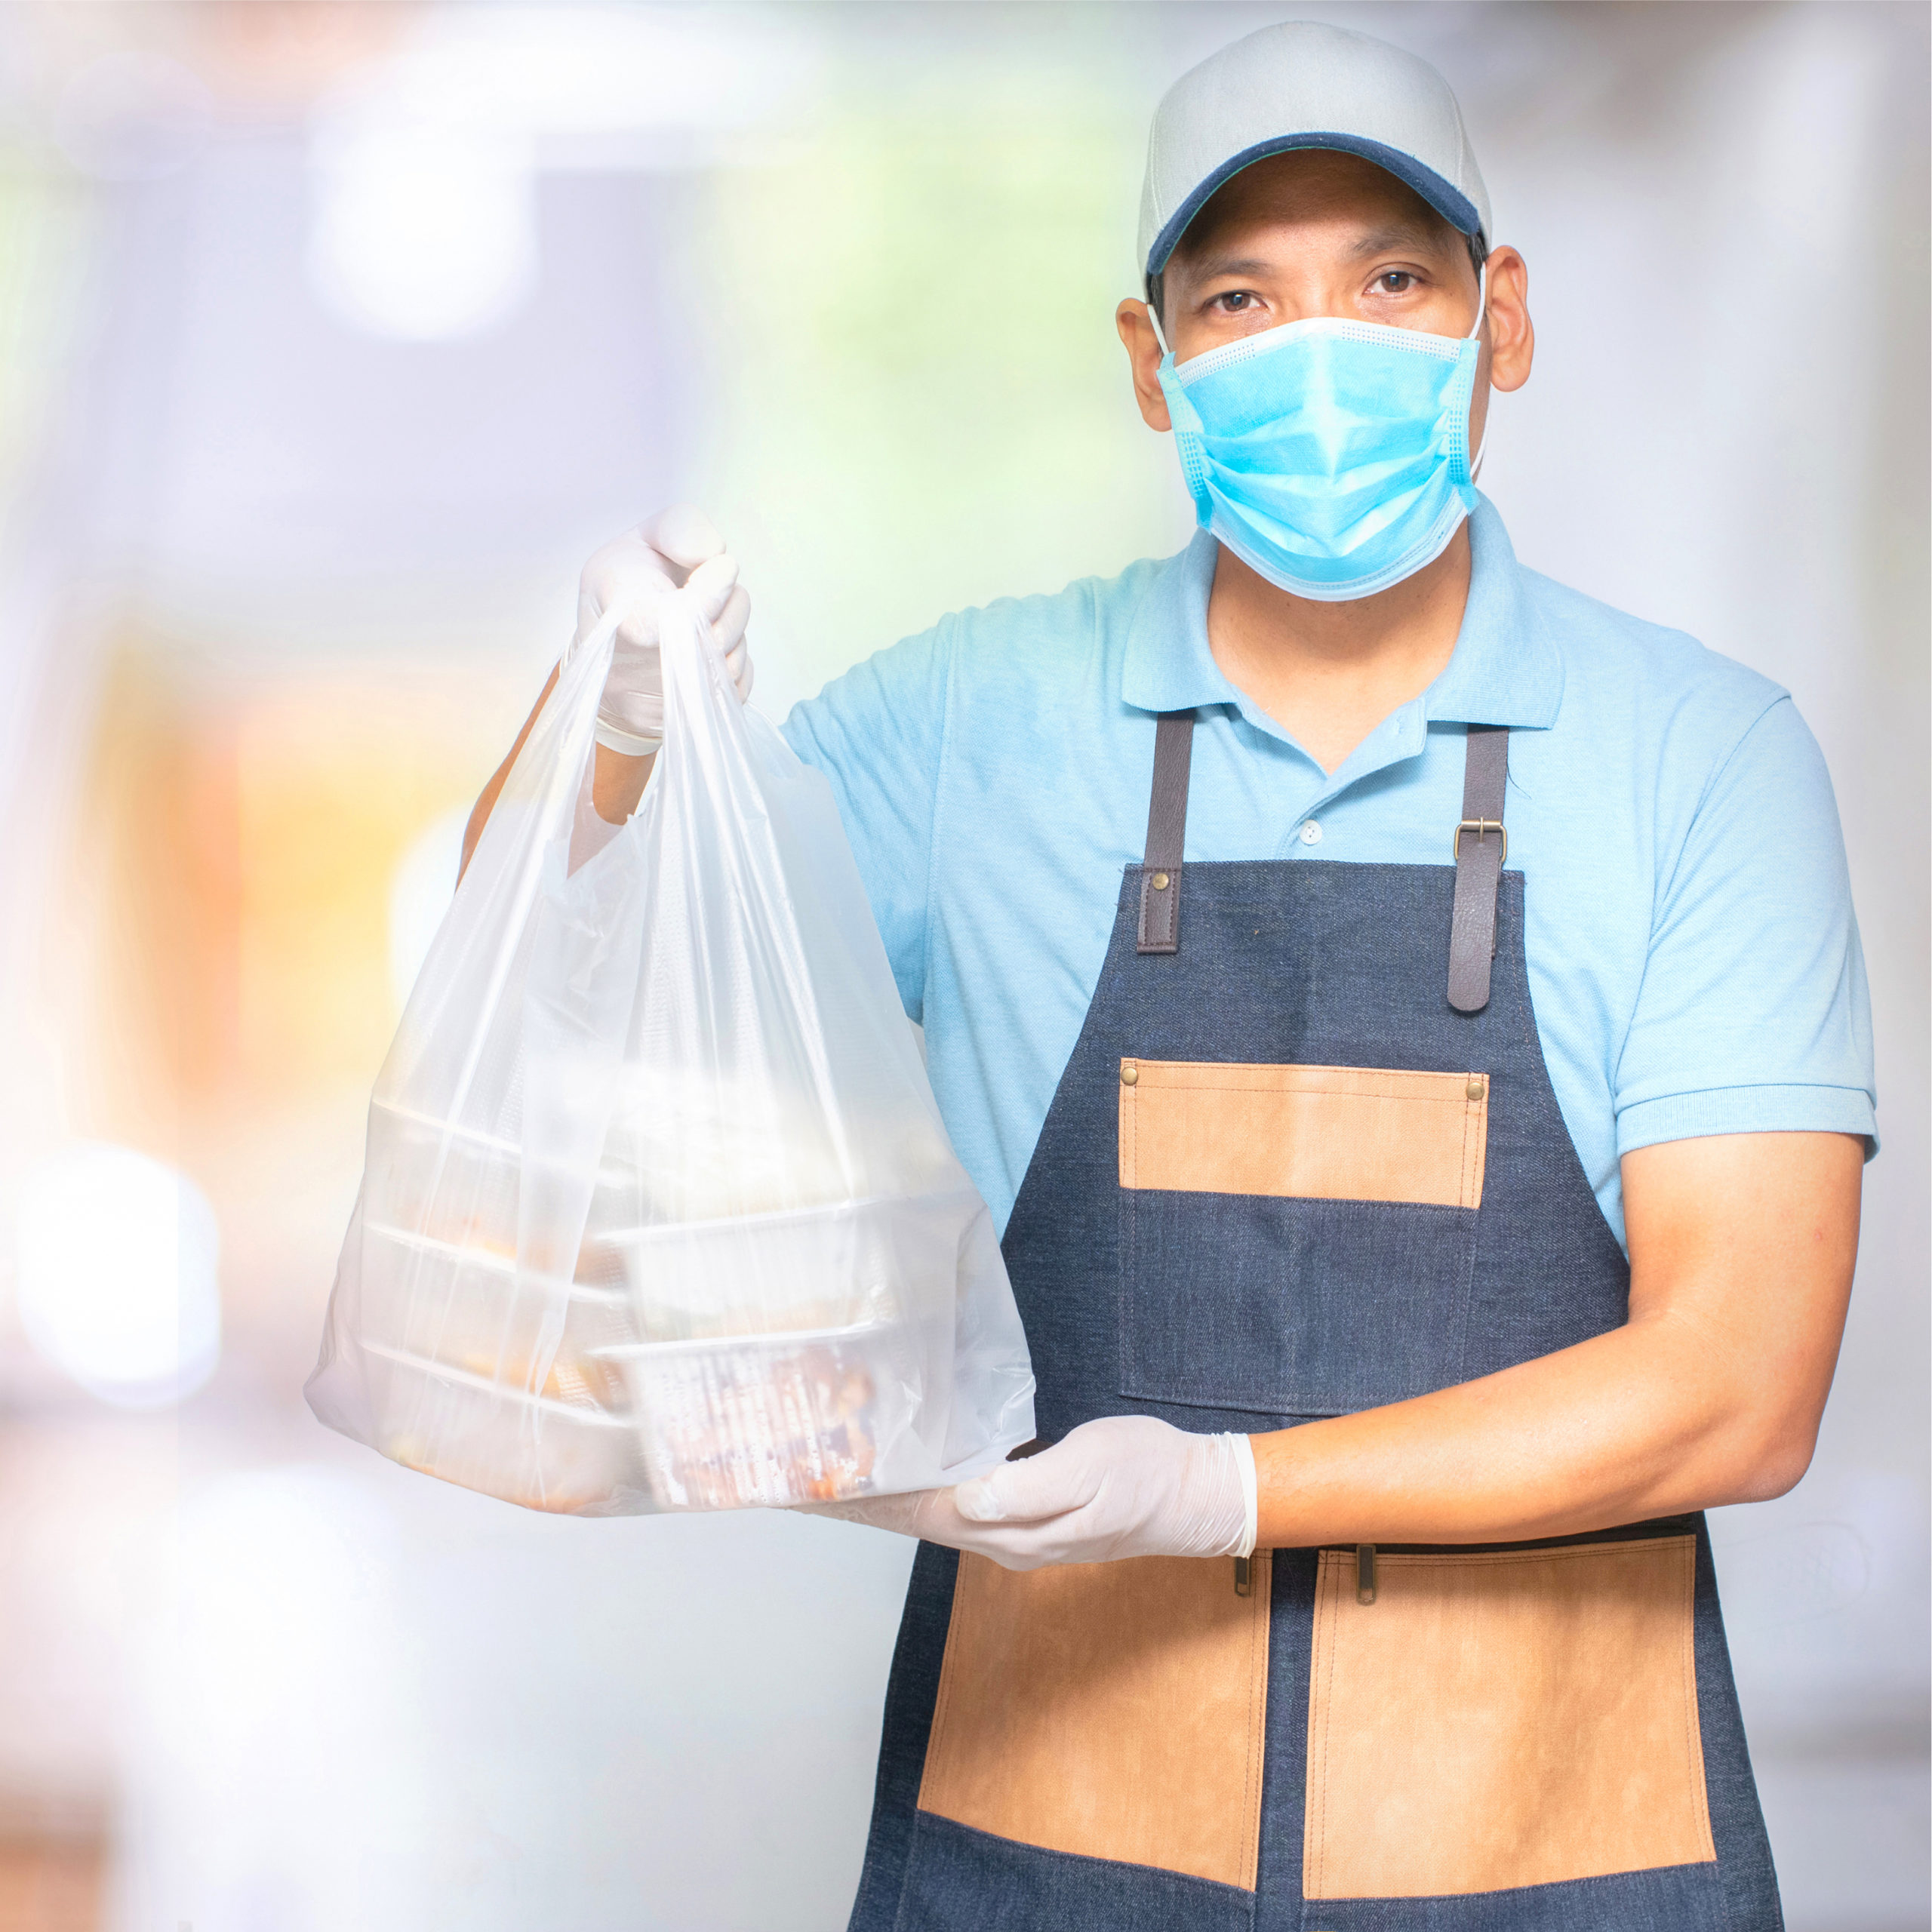 Food delivery person wearing a maske